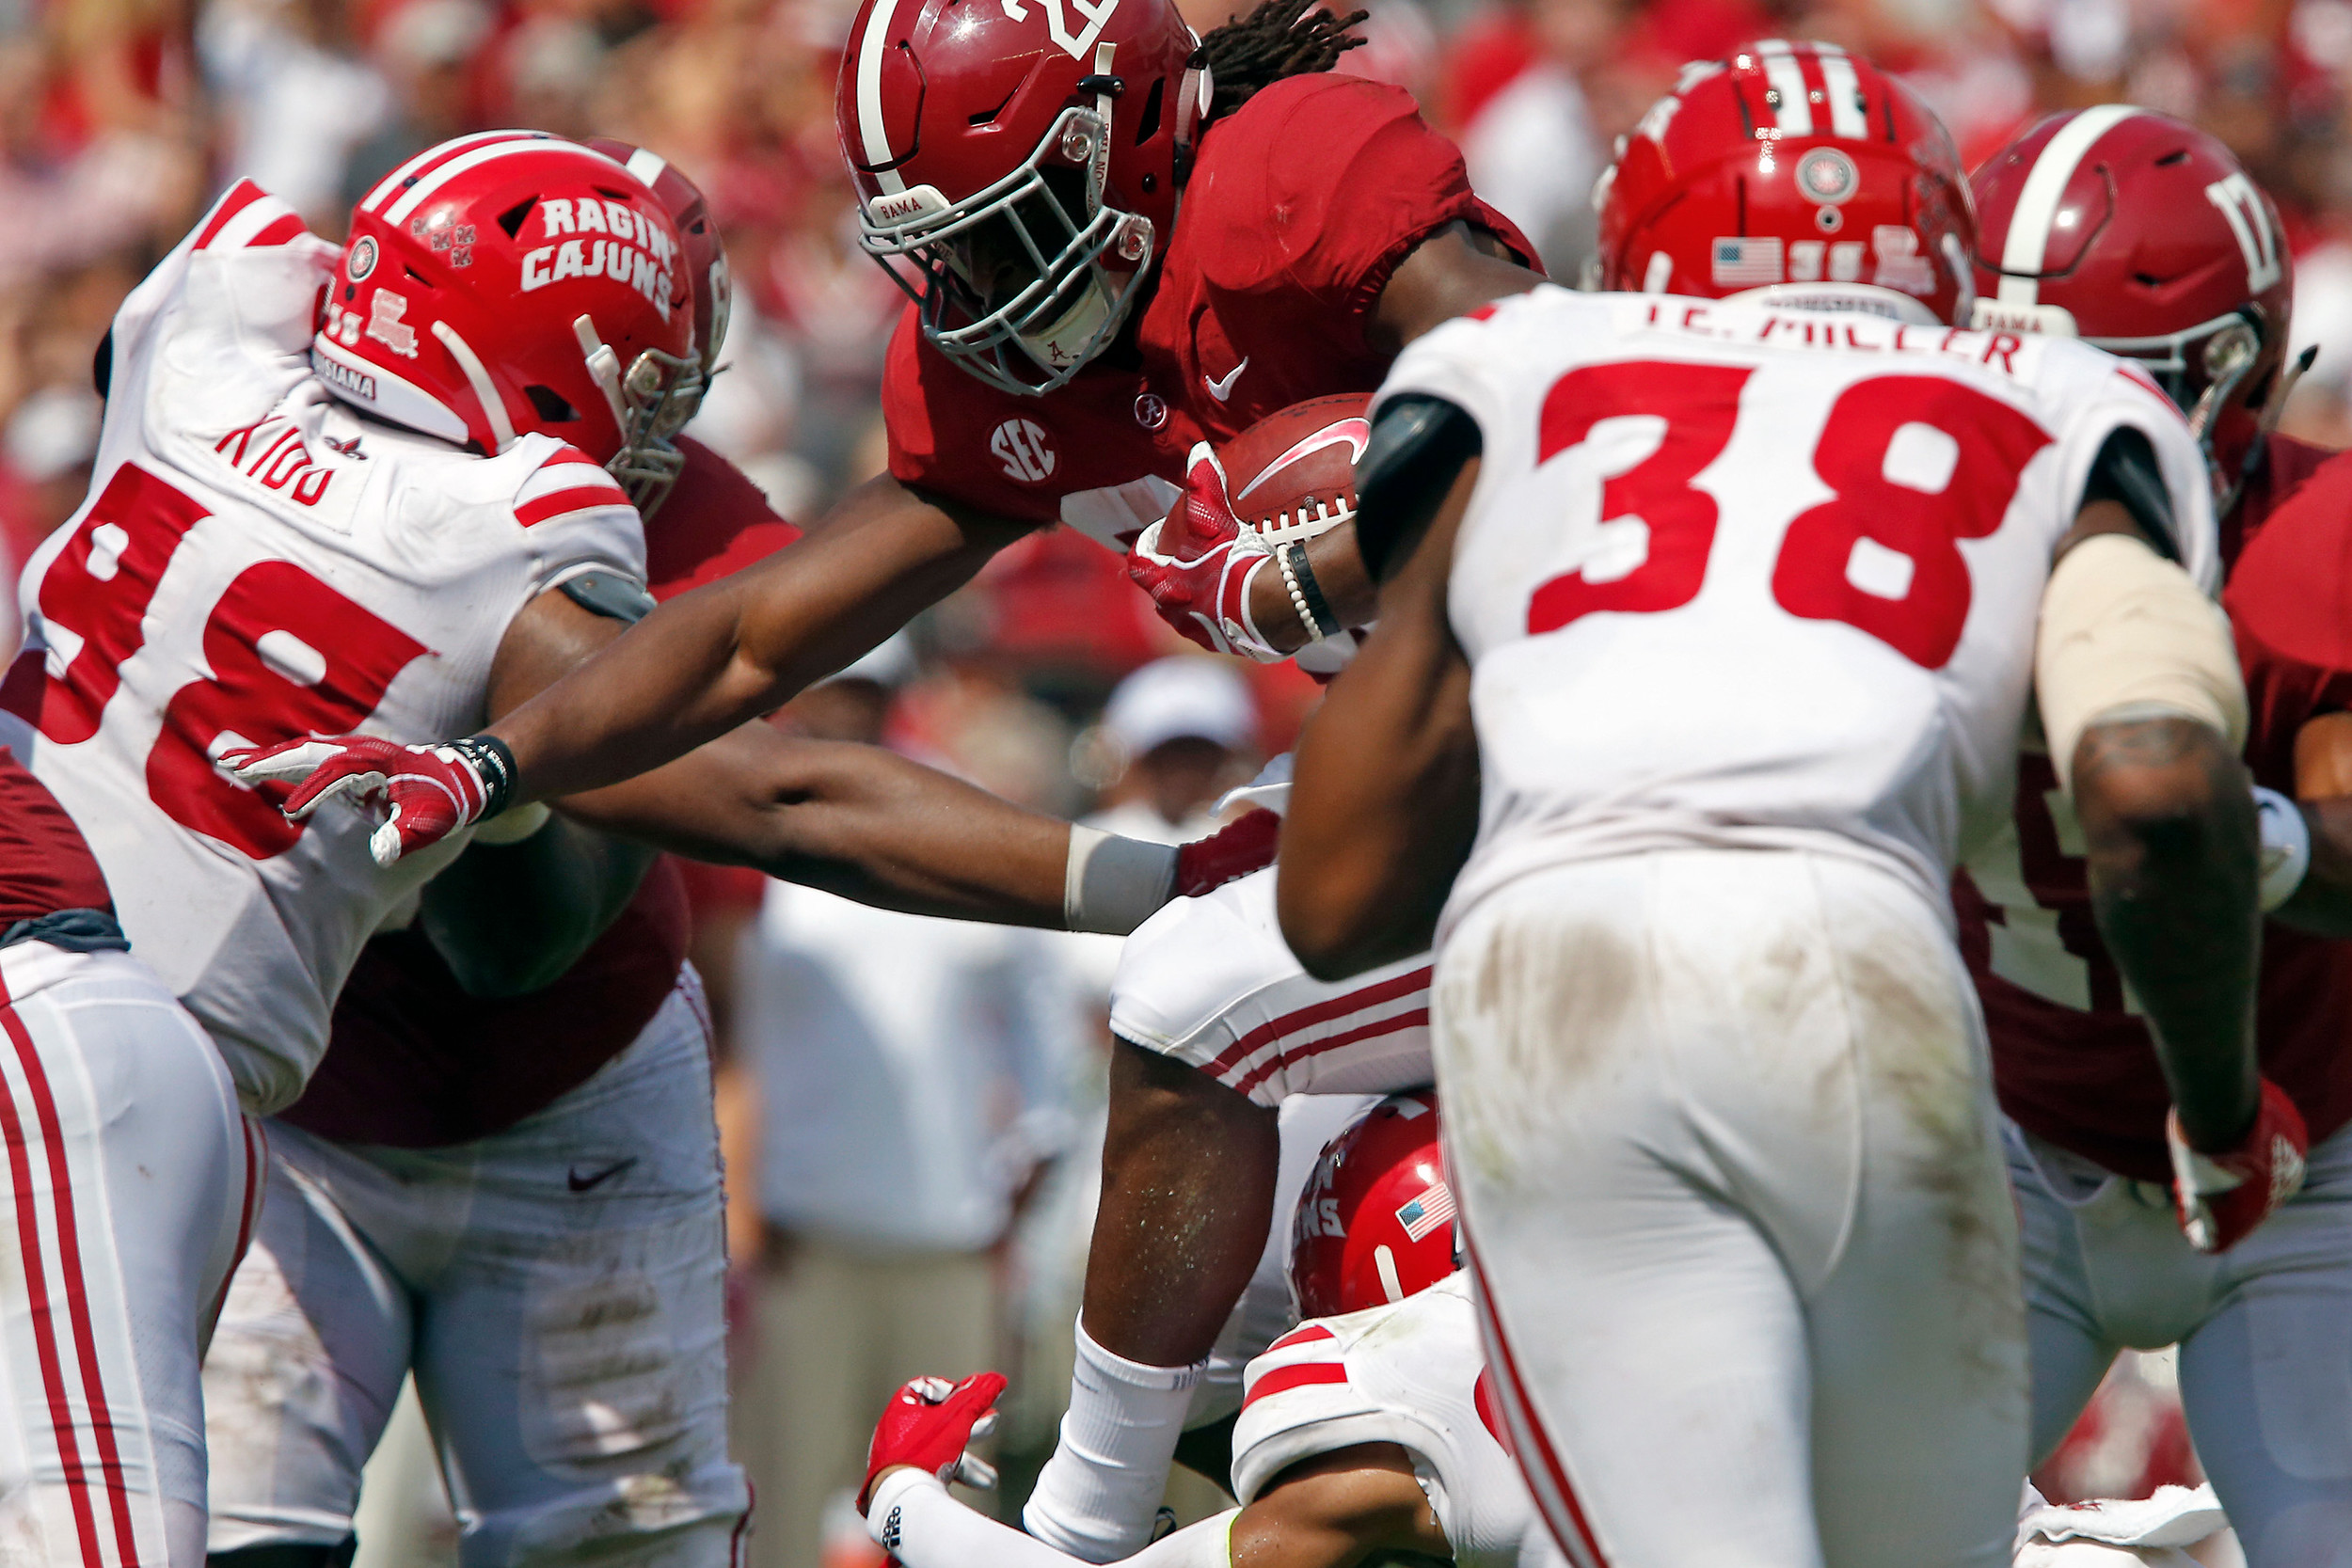 Alabama Crimson Tide running back Najee Harris (22) leaps a would be tackler at Bryant-Denny Stadium in Tuscaloosa, Al on September 29, 2018. Jason Clark / Daily Mountain Eagle